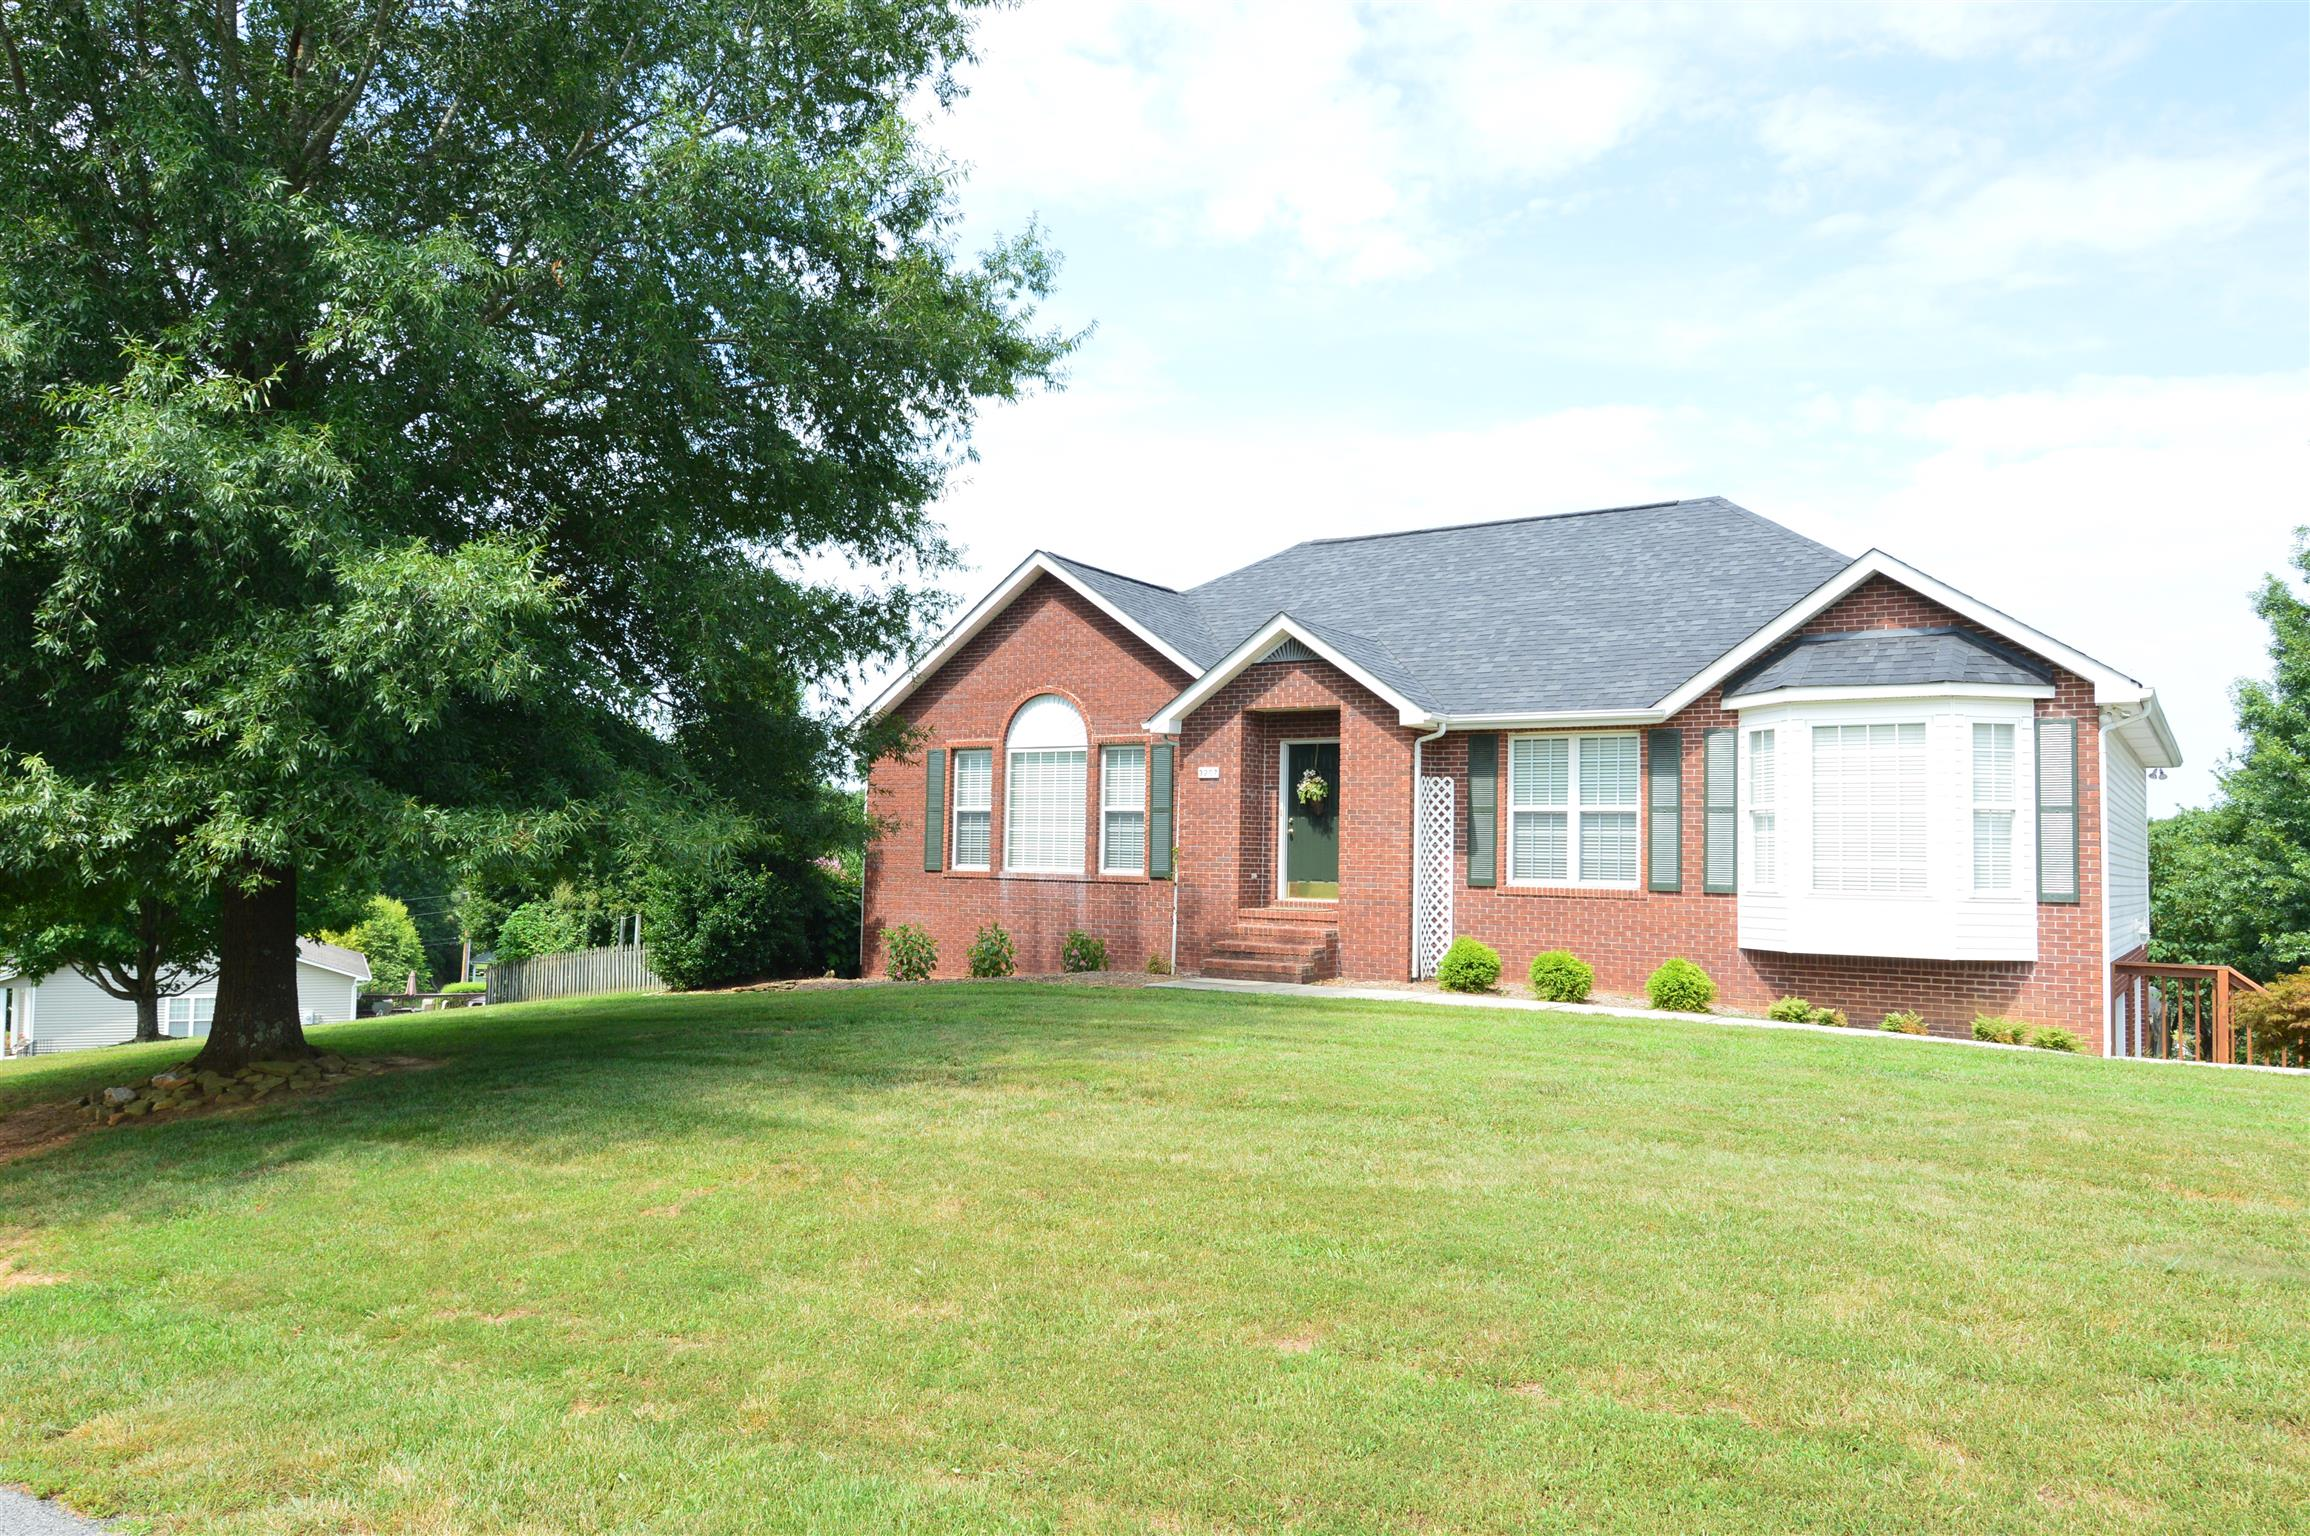 3207 Brookmeade Court, Cookeville, TN 38506 - Cookeville, TN real estate listing